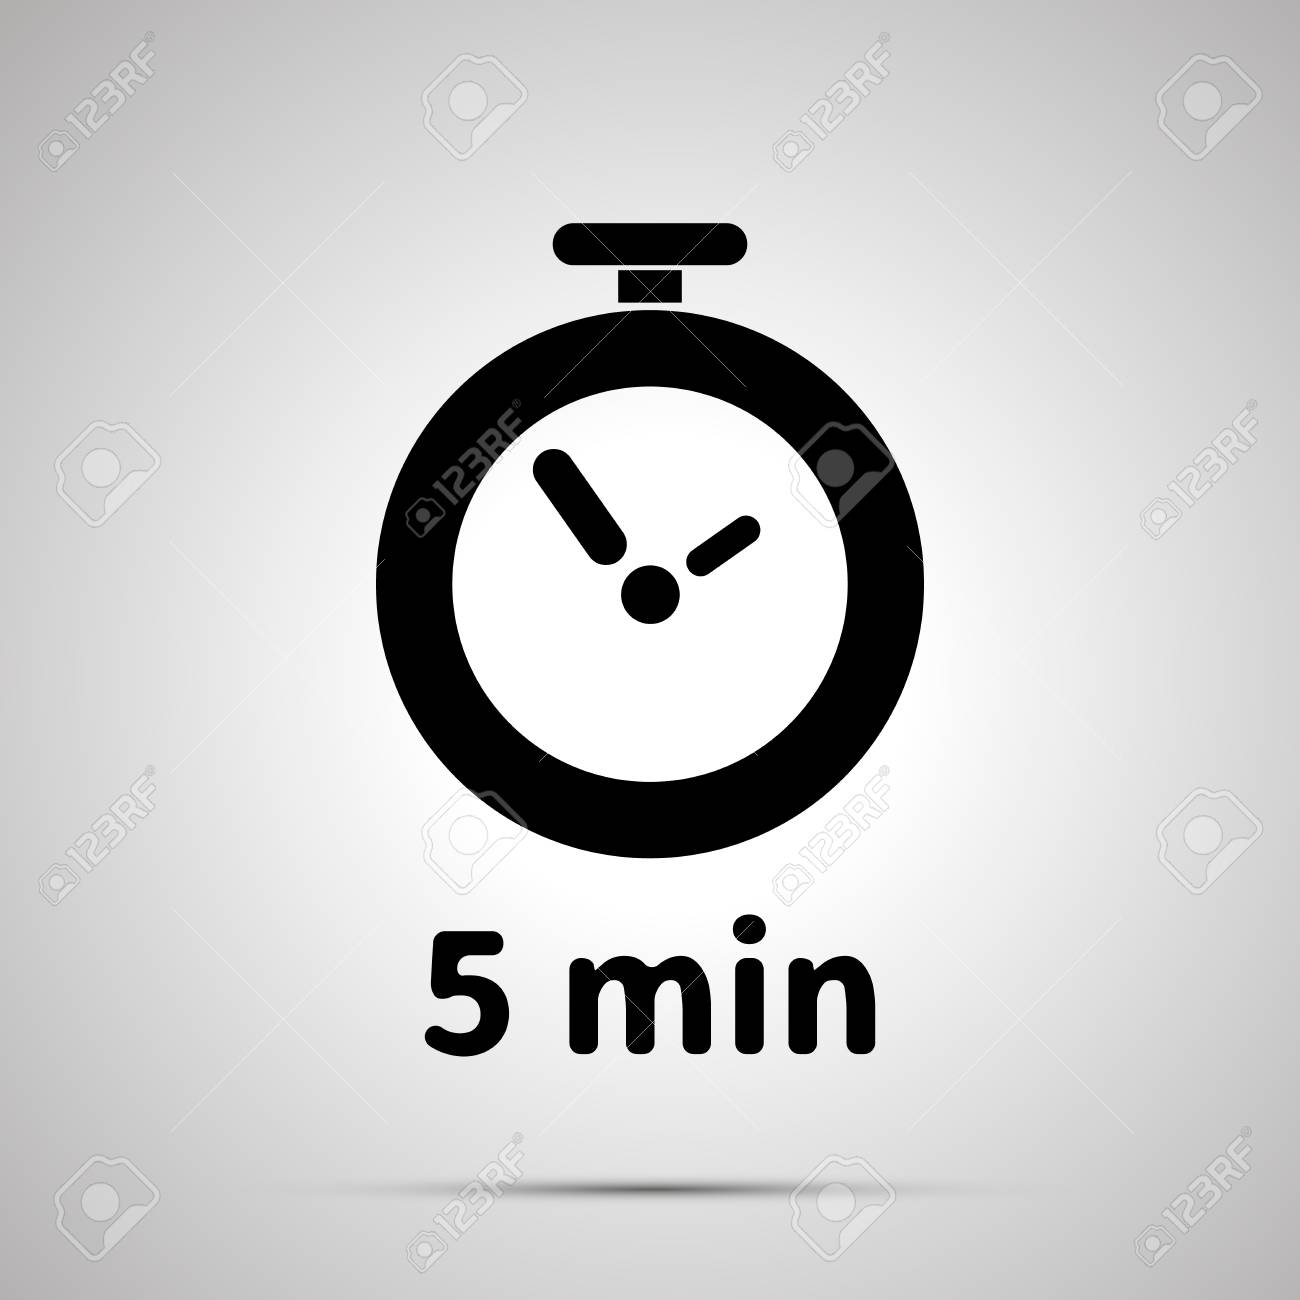 five minutes timer simple black icon with shadow ロイヤリティフリー